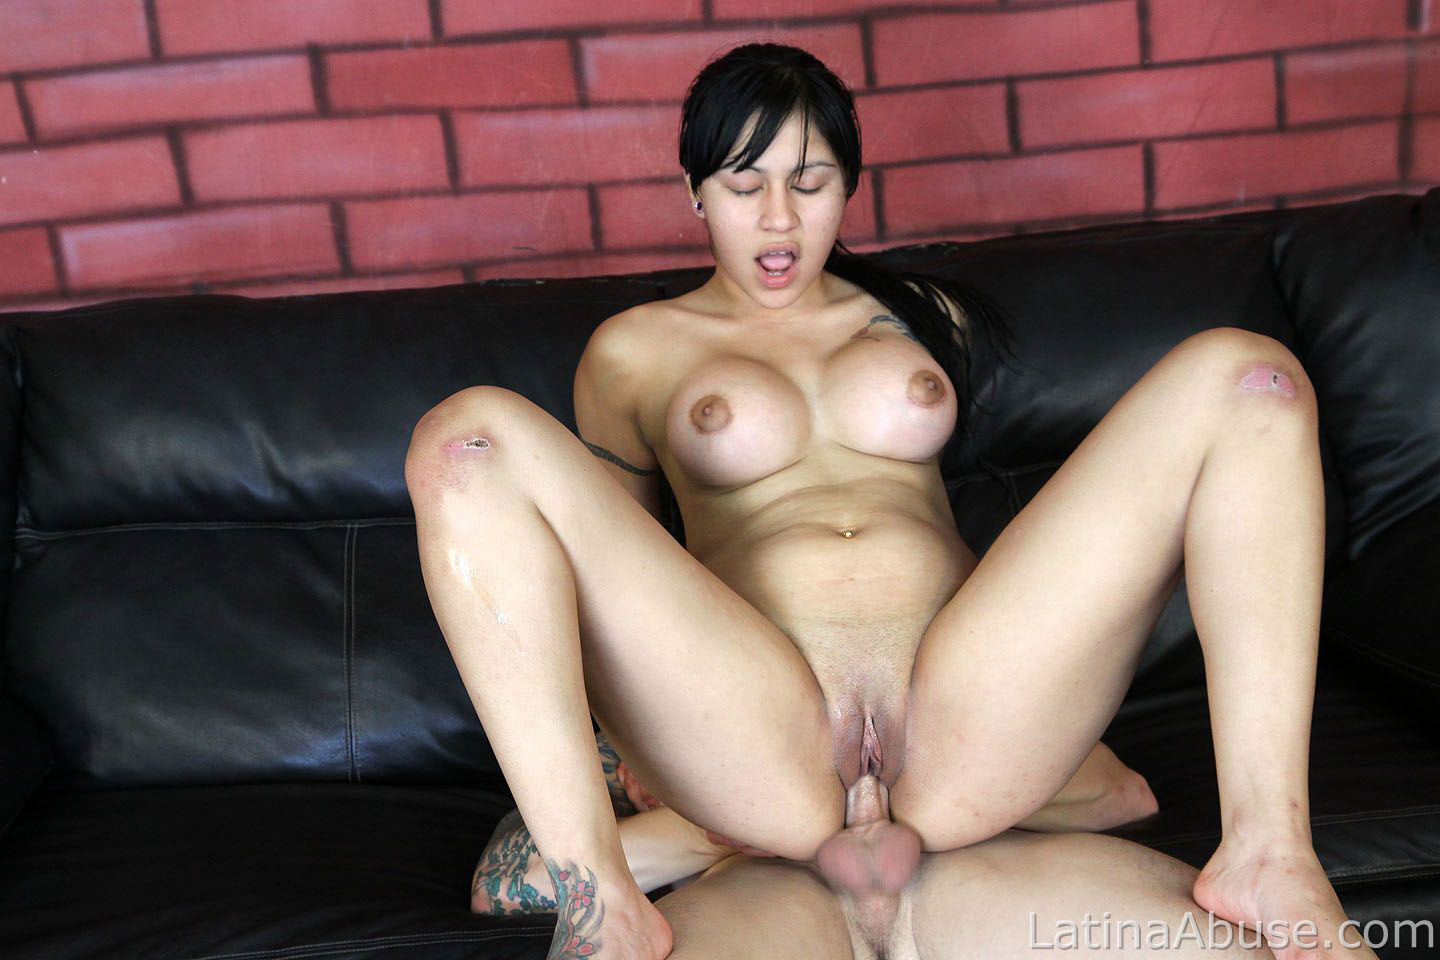 amelia latina facial - Latina abuse